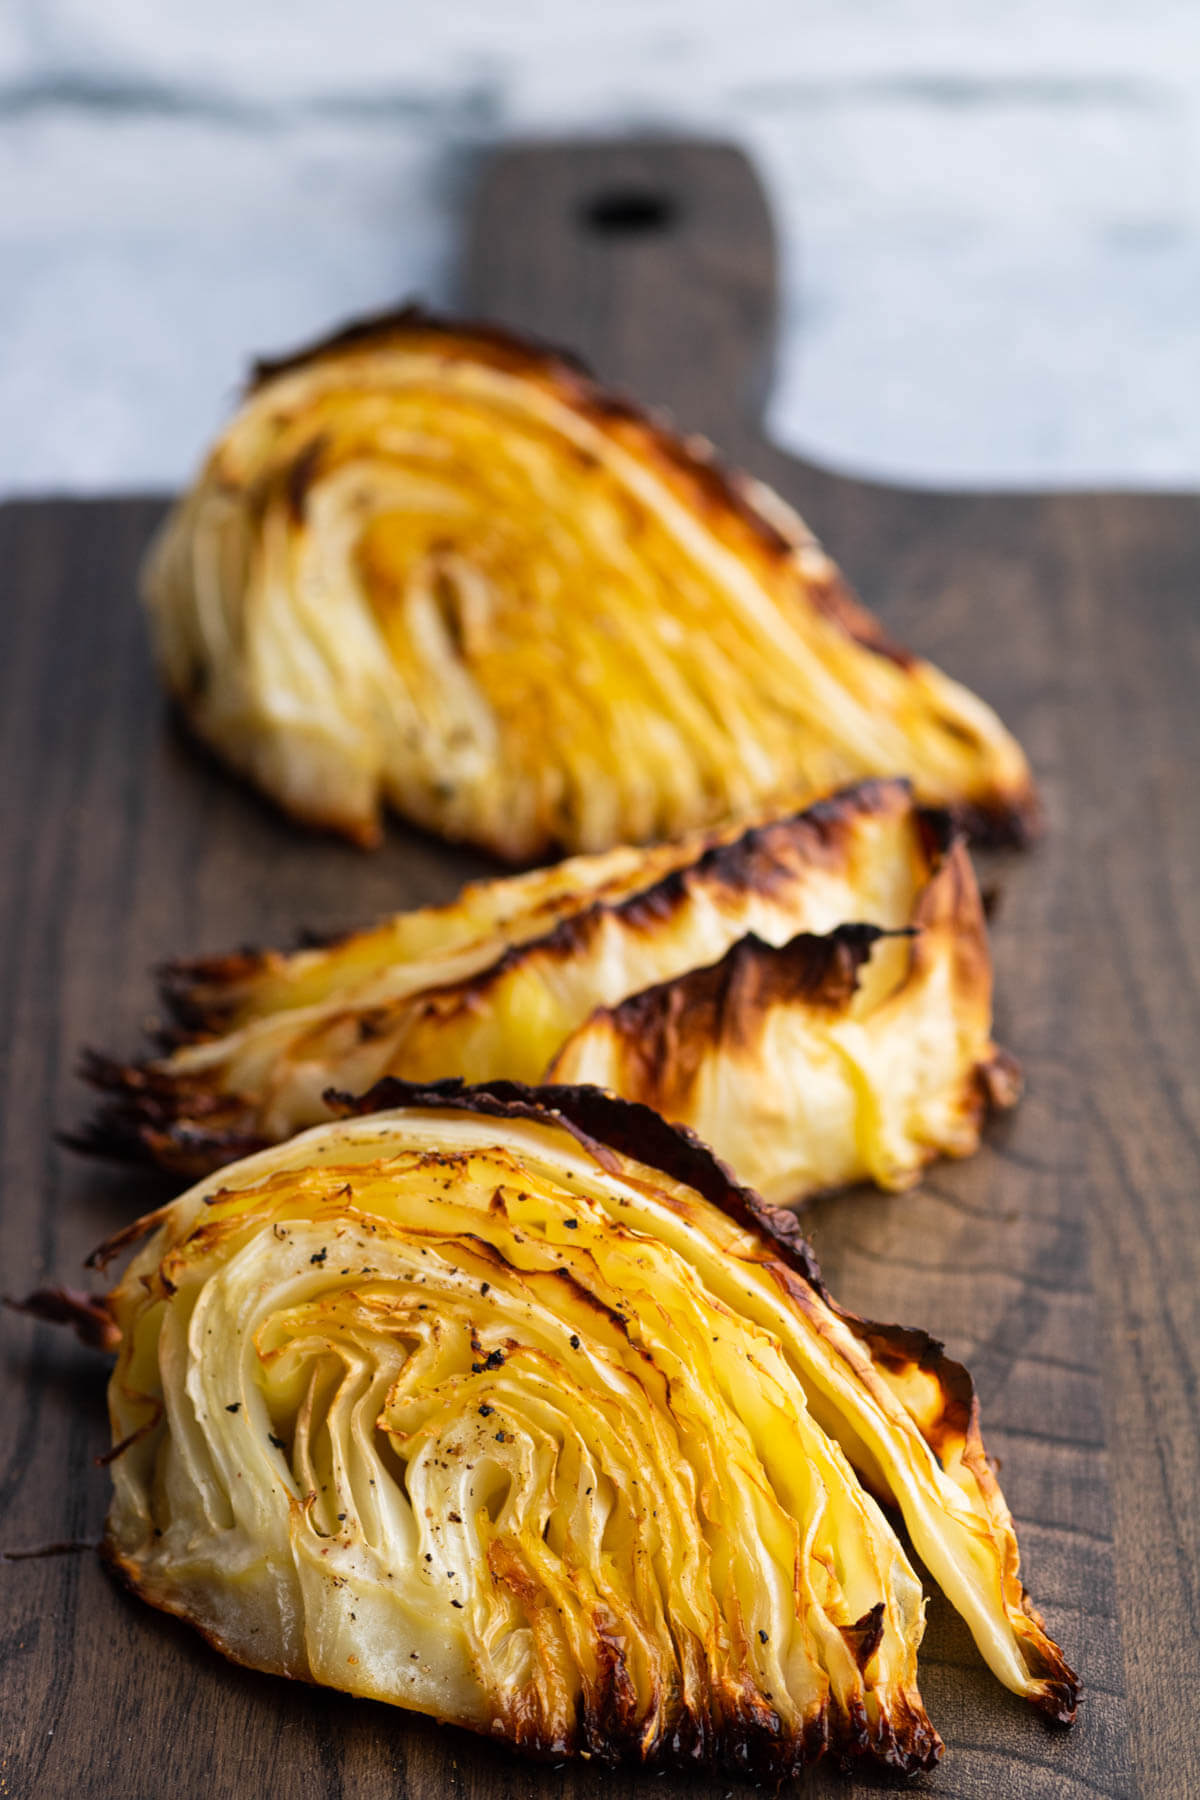 Wedges of Roasted Cabbage on a dark board.